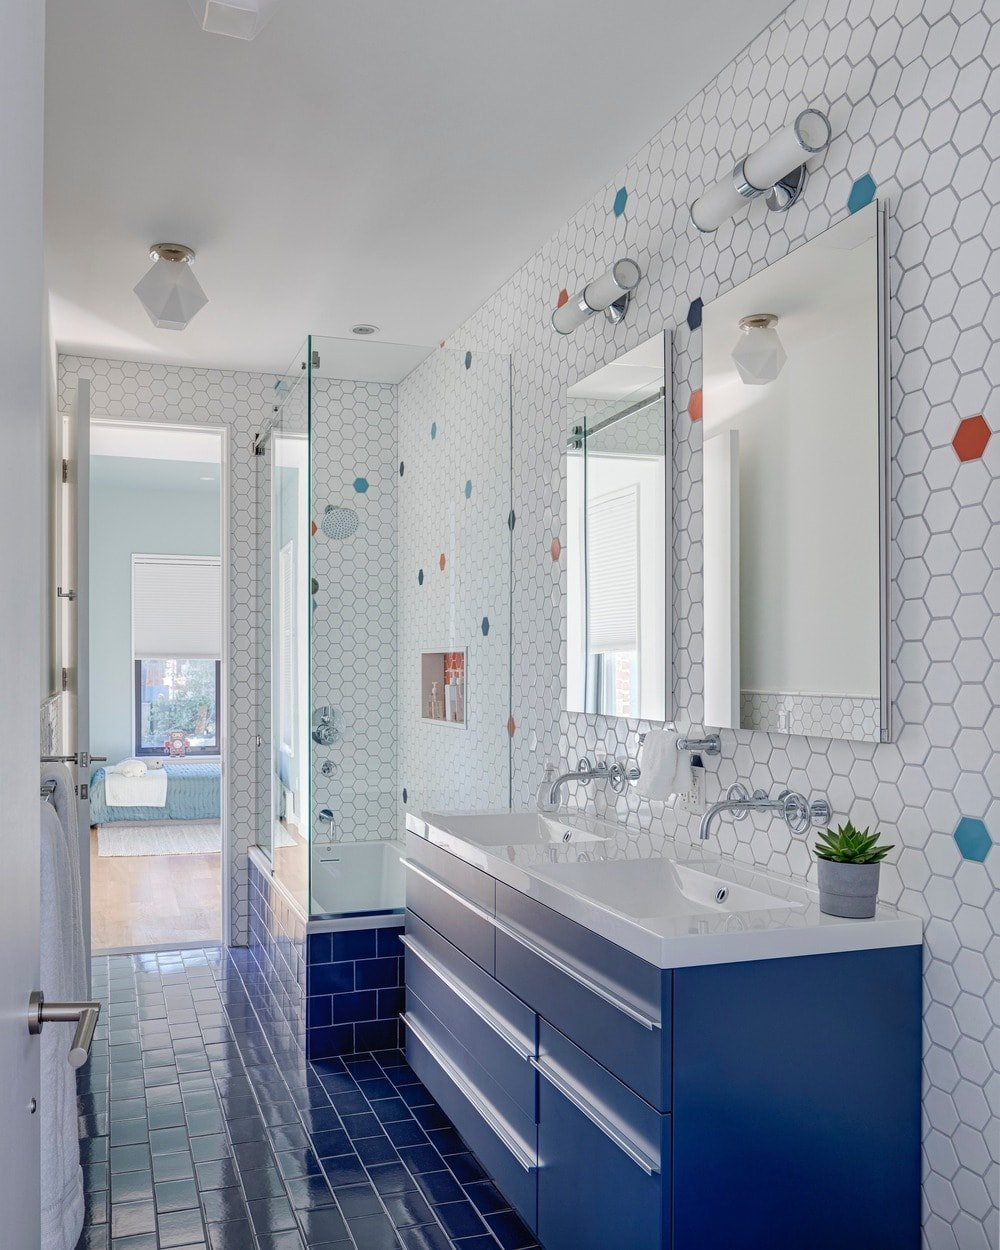 The walls of this bathroom have hexagonal tiles on the upper section of the bathroom with a few colorful tiles standing out in their isolation amongst white. The lower section is dominated by the bright blue tiles of the floor and the modern blue vanity.